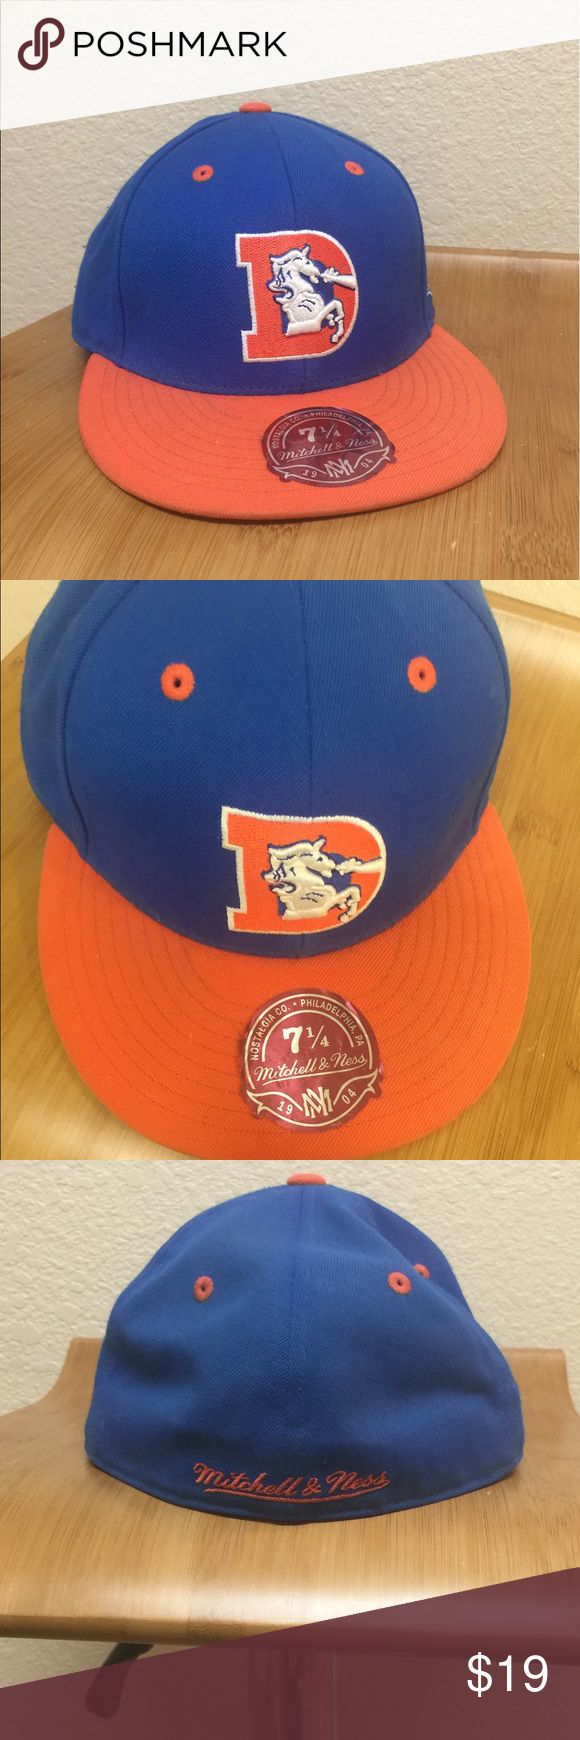 Denver Broncos fitted cap Mitchell and Ness Denver Broncos fitted cap. Vintage collection. Size 7 1/4 Mitchell & Ness Accessories Hats